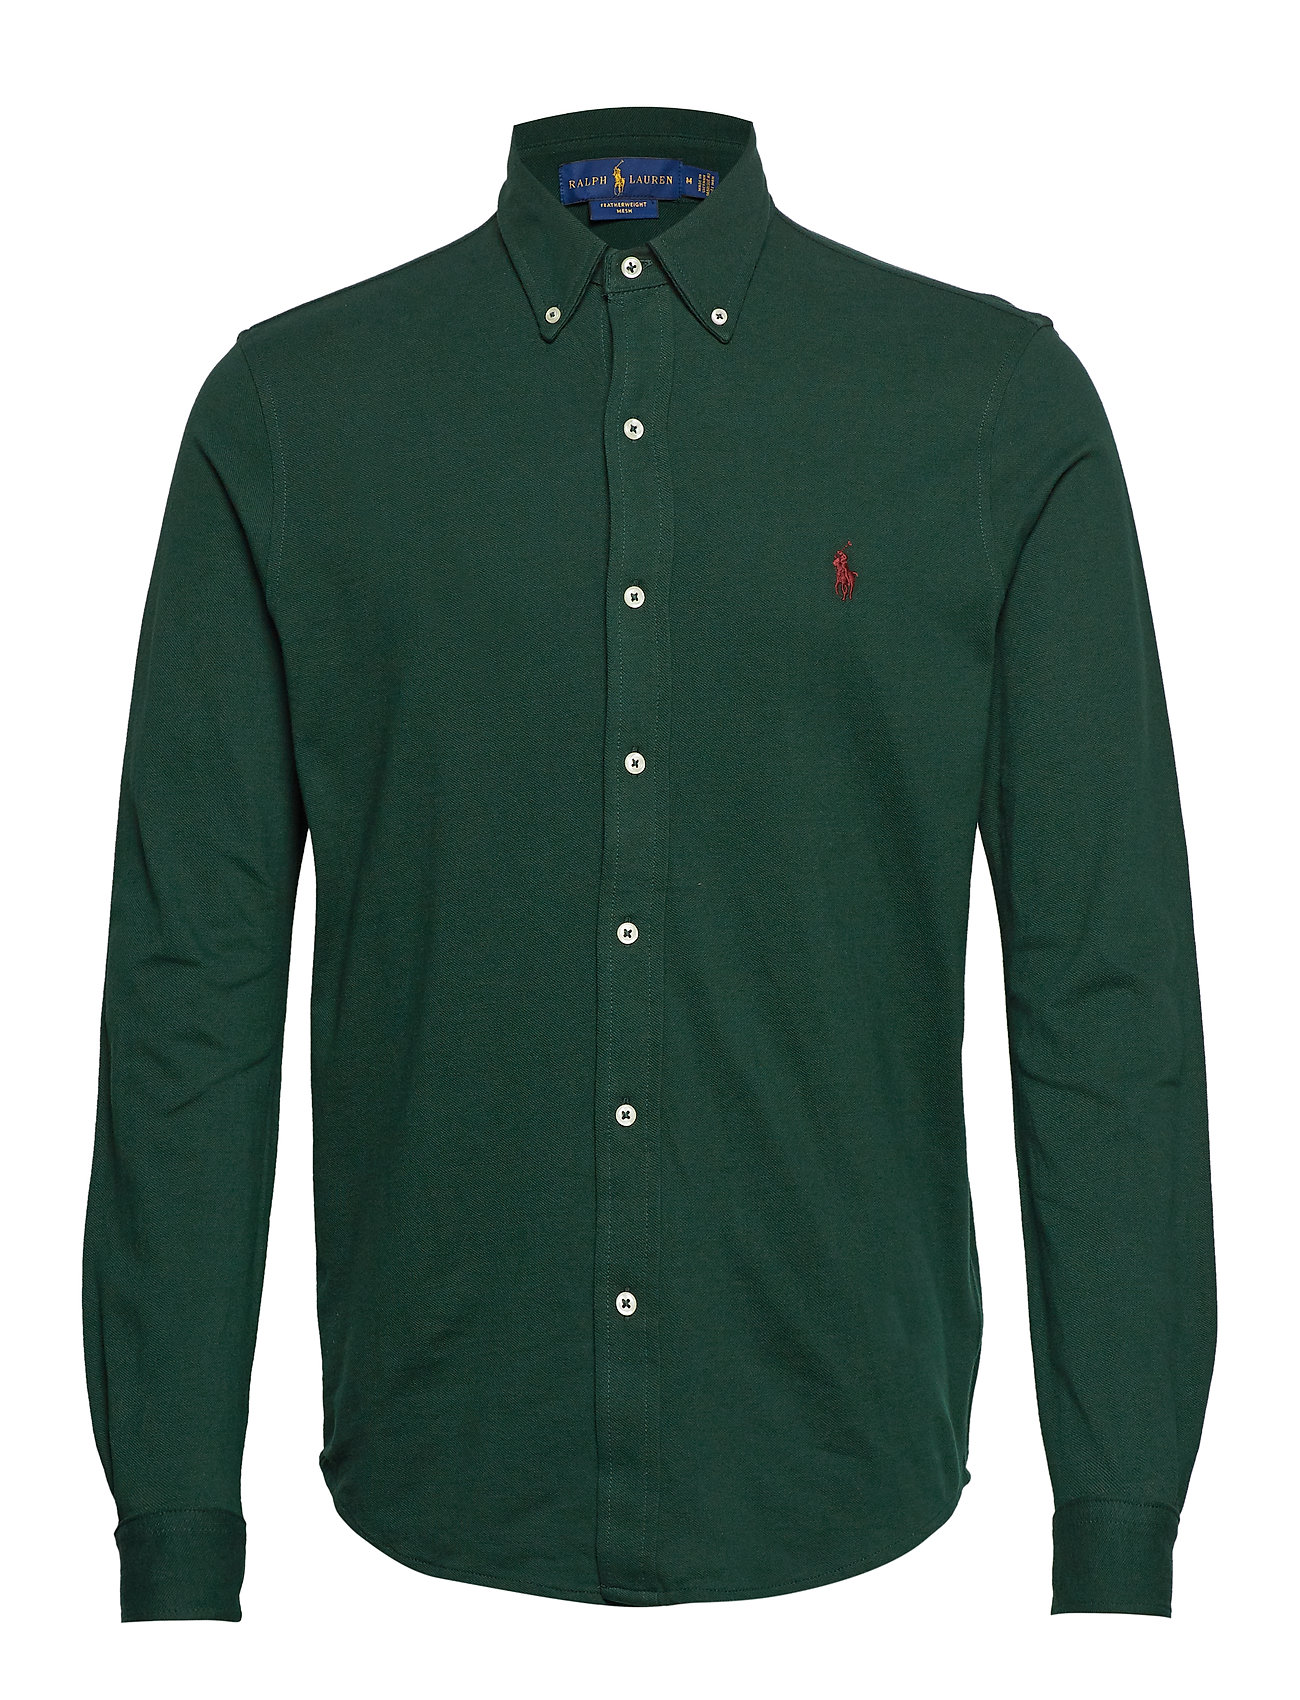 Polo Ralph Lauren Featherweight Mesh Shirt - COLLEGE GREEN